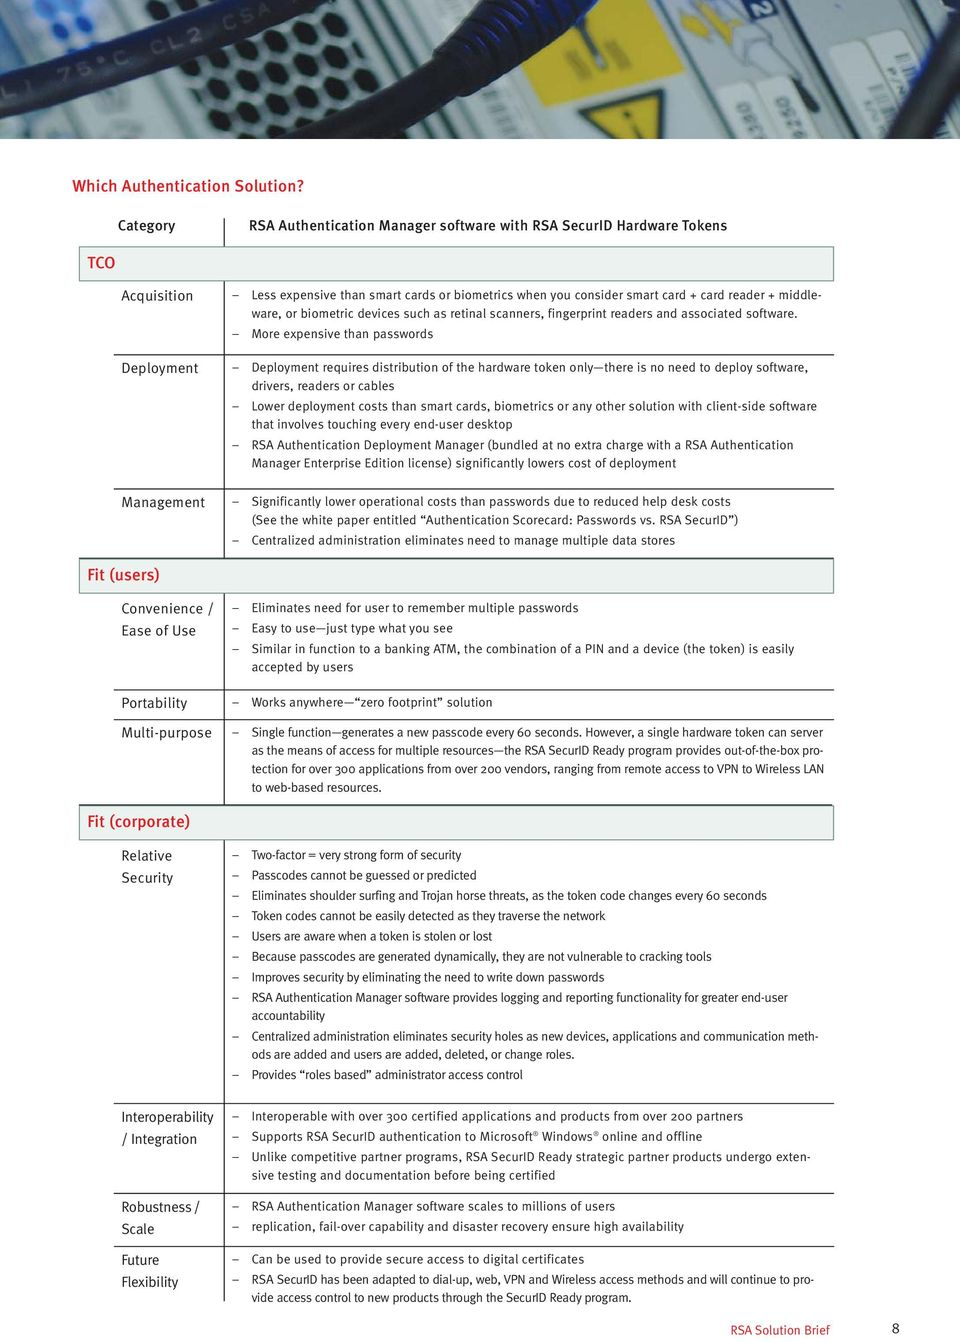 RSA Solution Brief  A Comprehensive Introduction to RSA